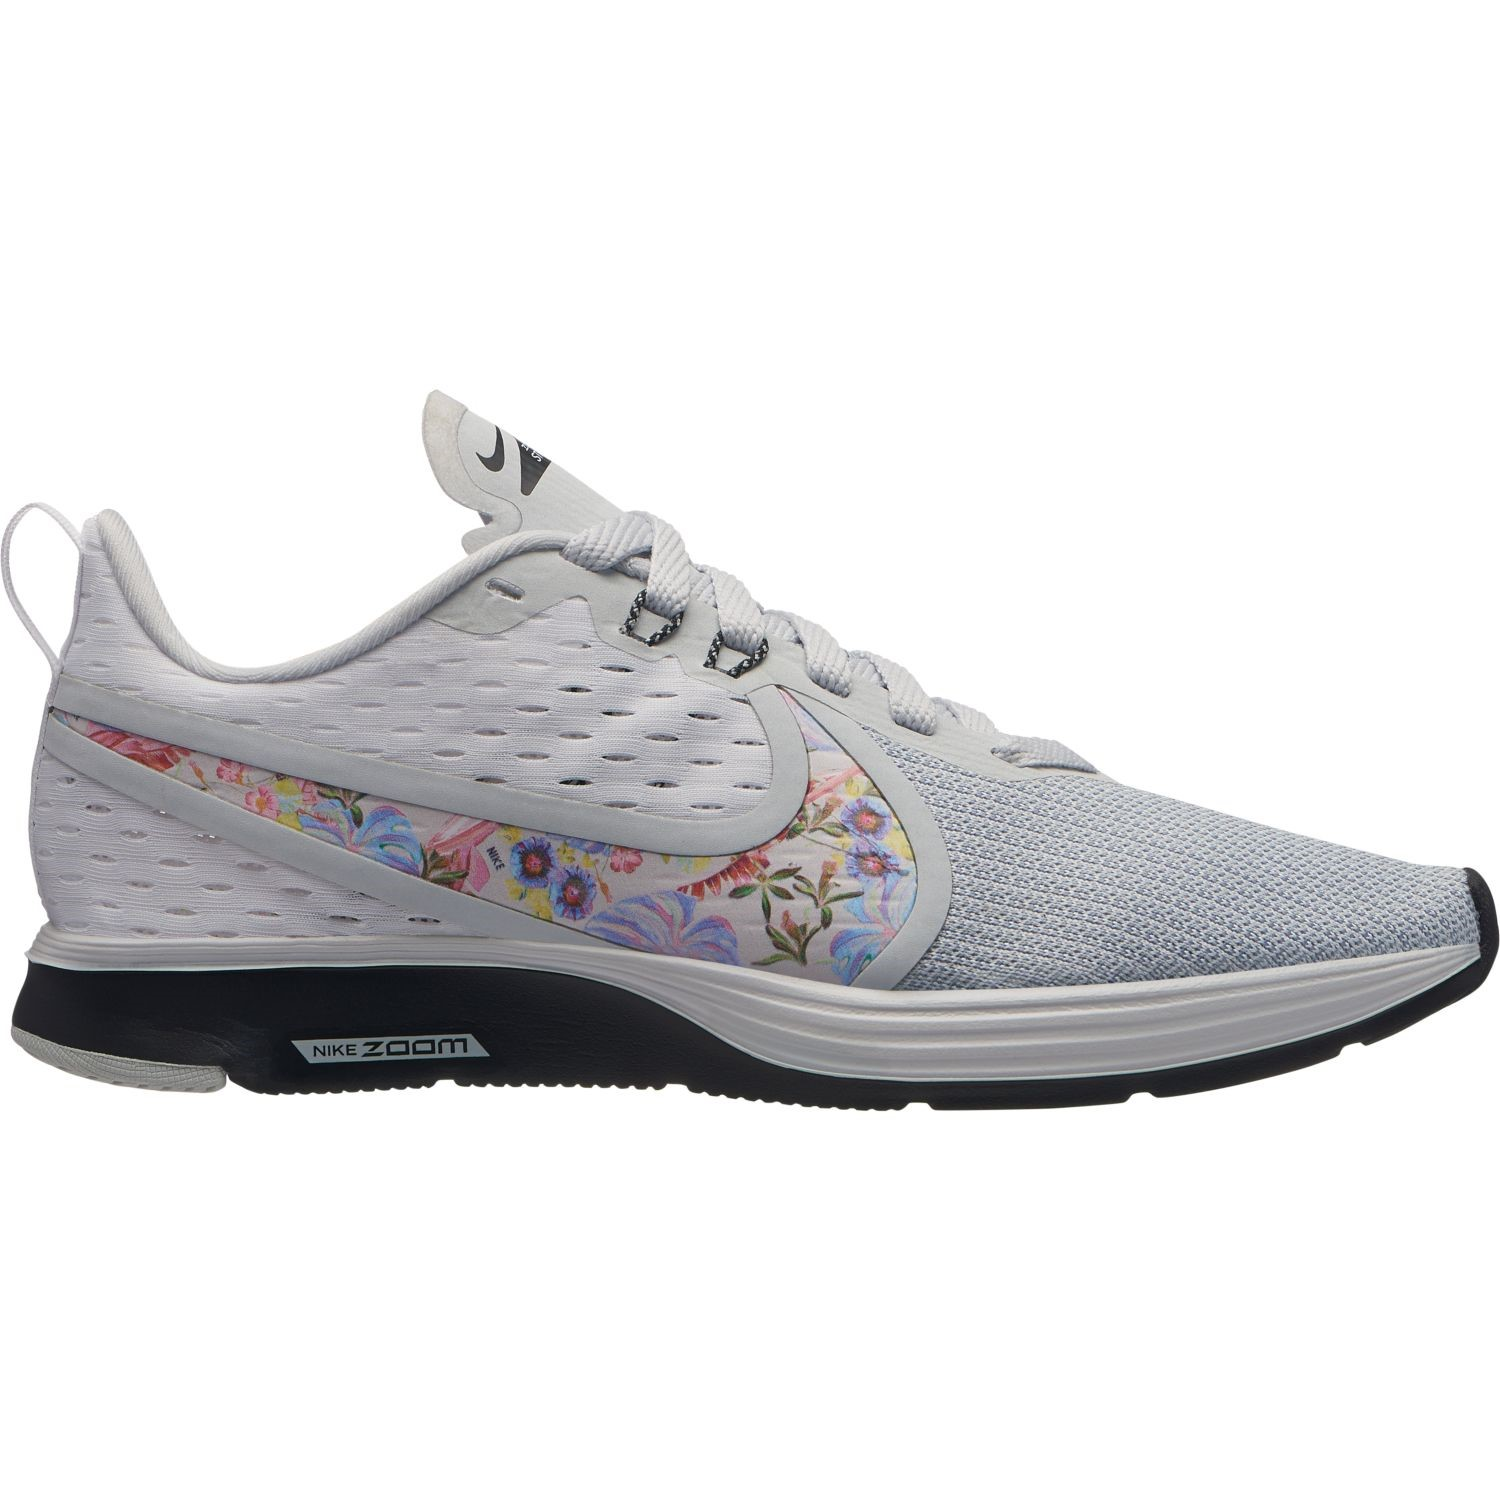 ff4eddfd38e3b Nike Zoom Strike 2 Premium - Womens Running Shoes - Pure Platinum Floral